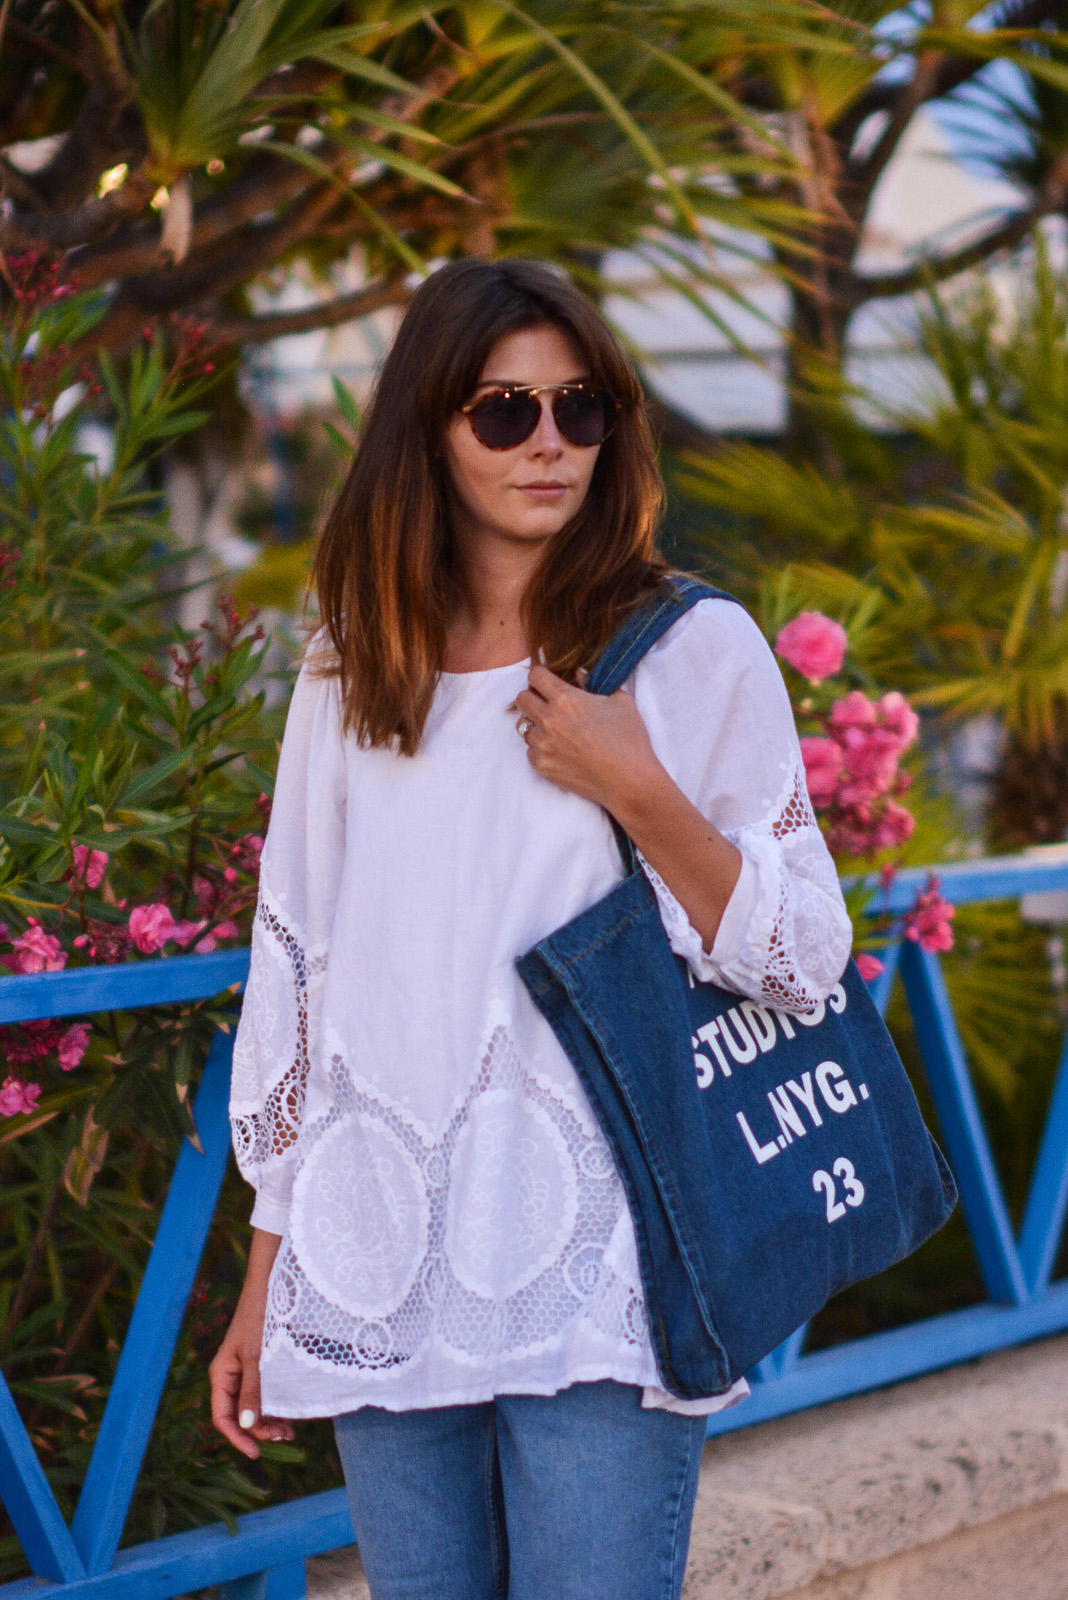 EJSTYLE - Emma Hill wears Acne Studios printed denim tote bag, white summer top with cut out embroidered detail, ASOS thea girlfriend jeans, asos round bridge 70s sunglasses